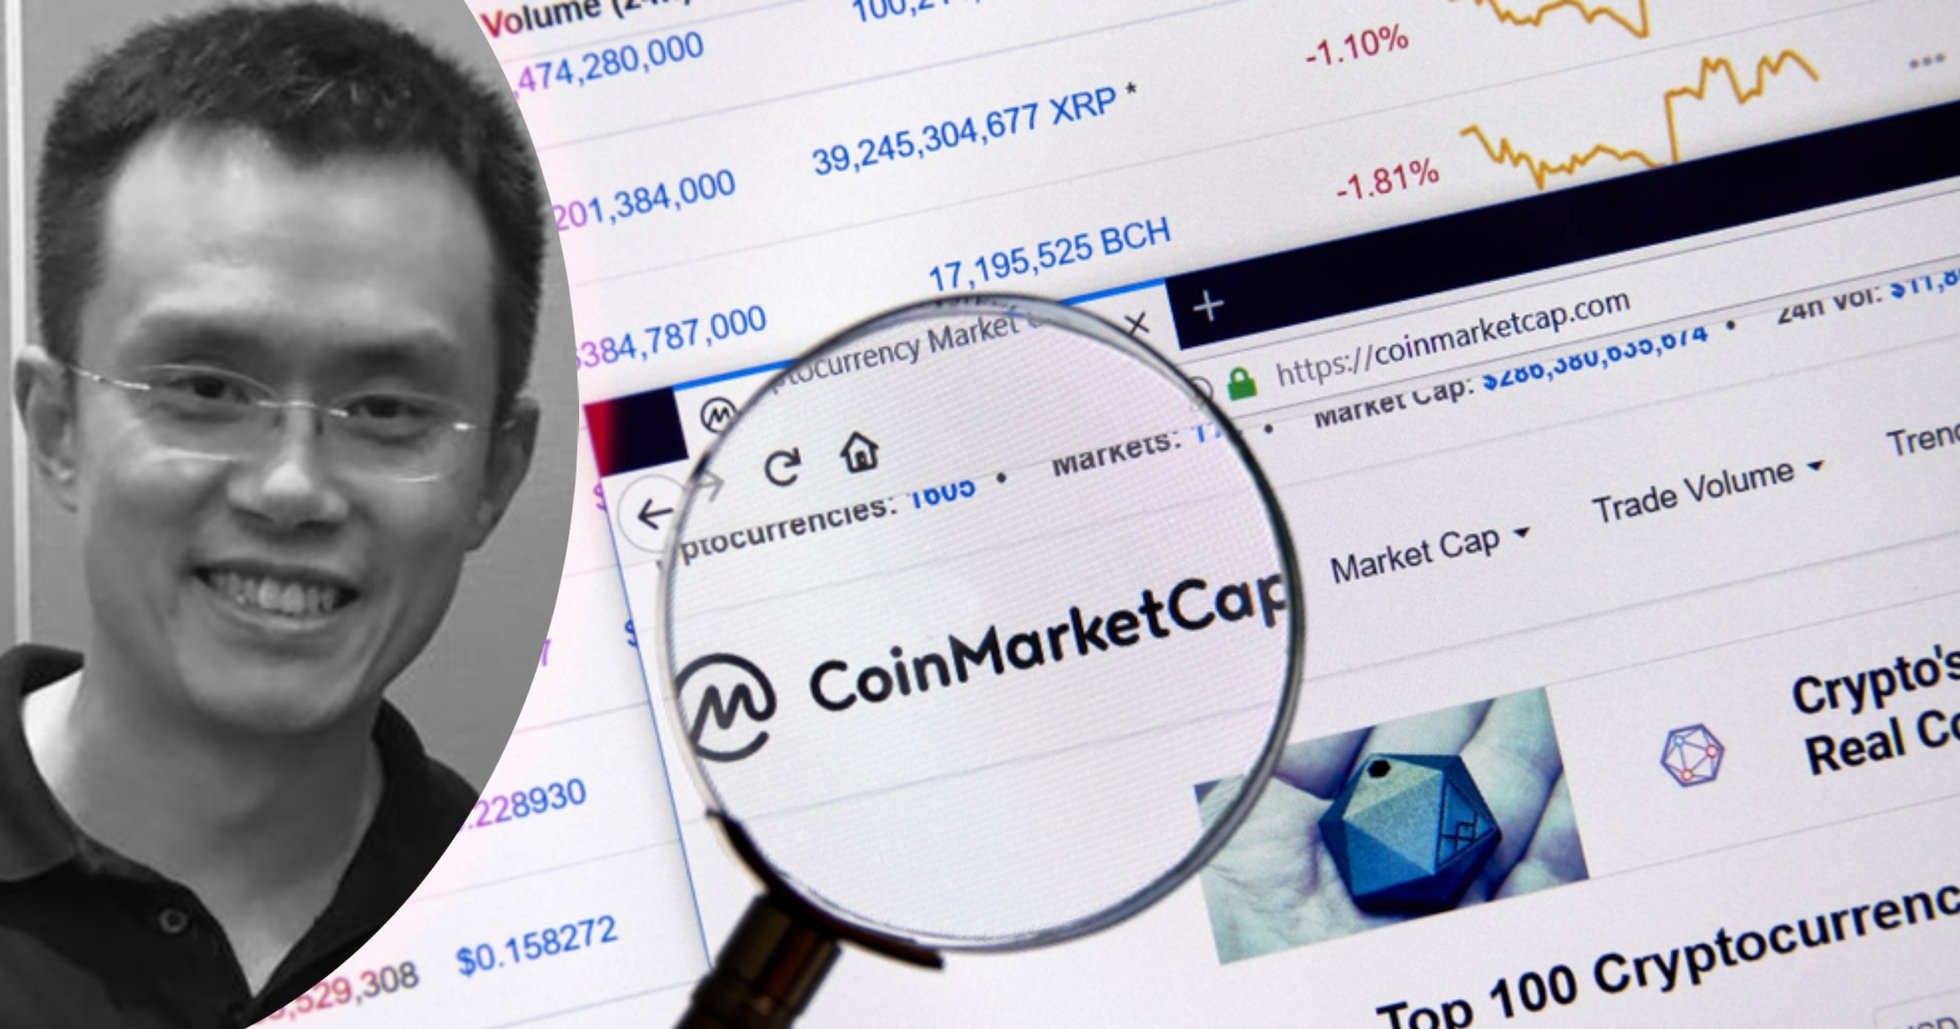 Binance's CEO tweets about Coinmarketcap – is met with criticism about bias